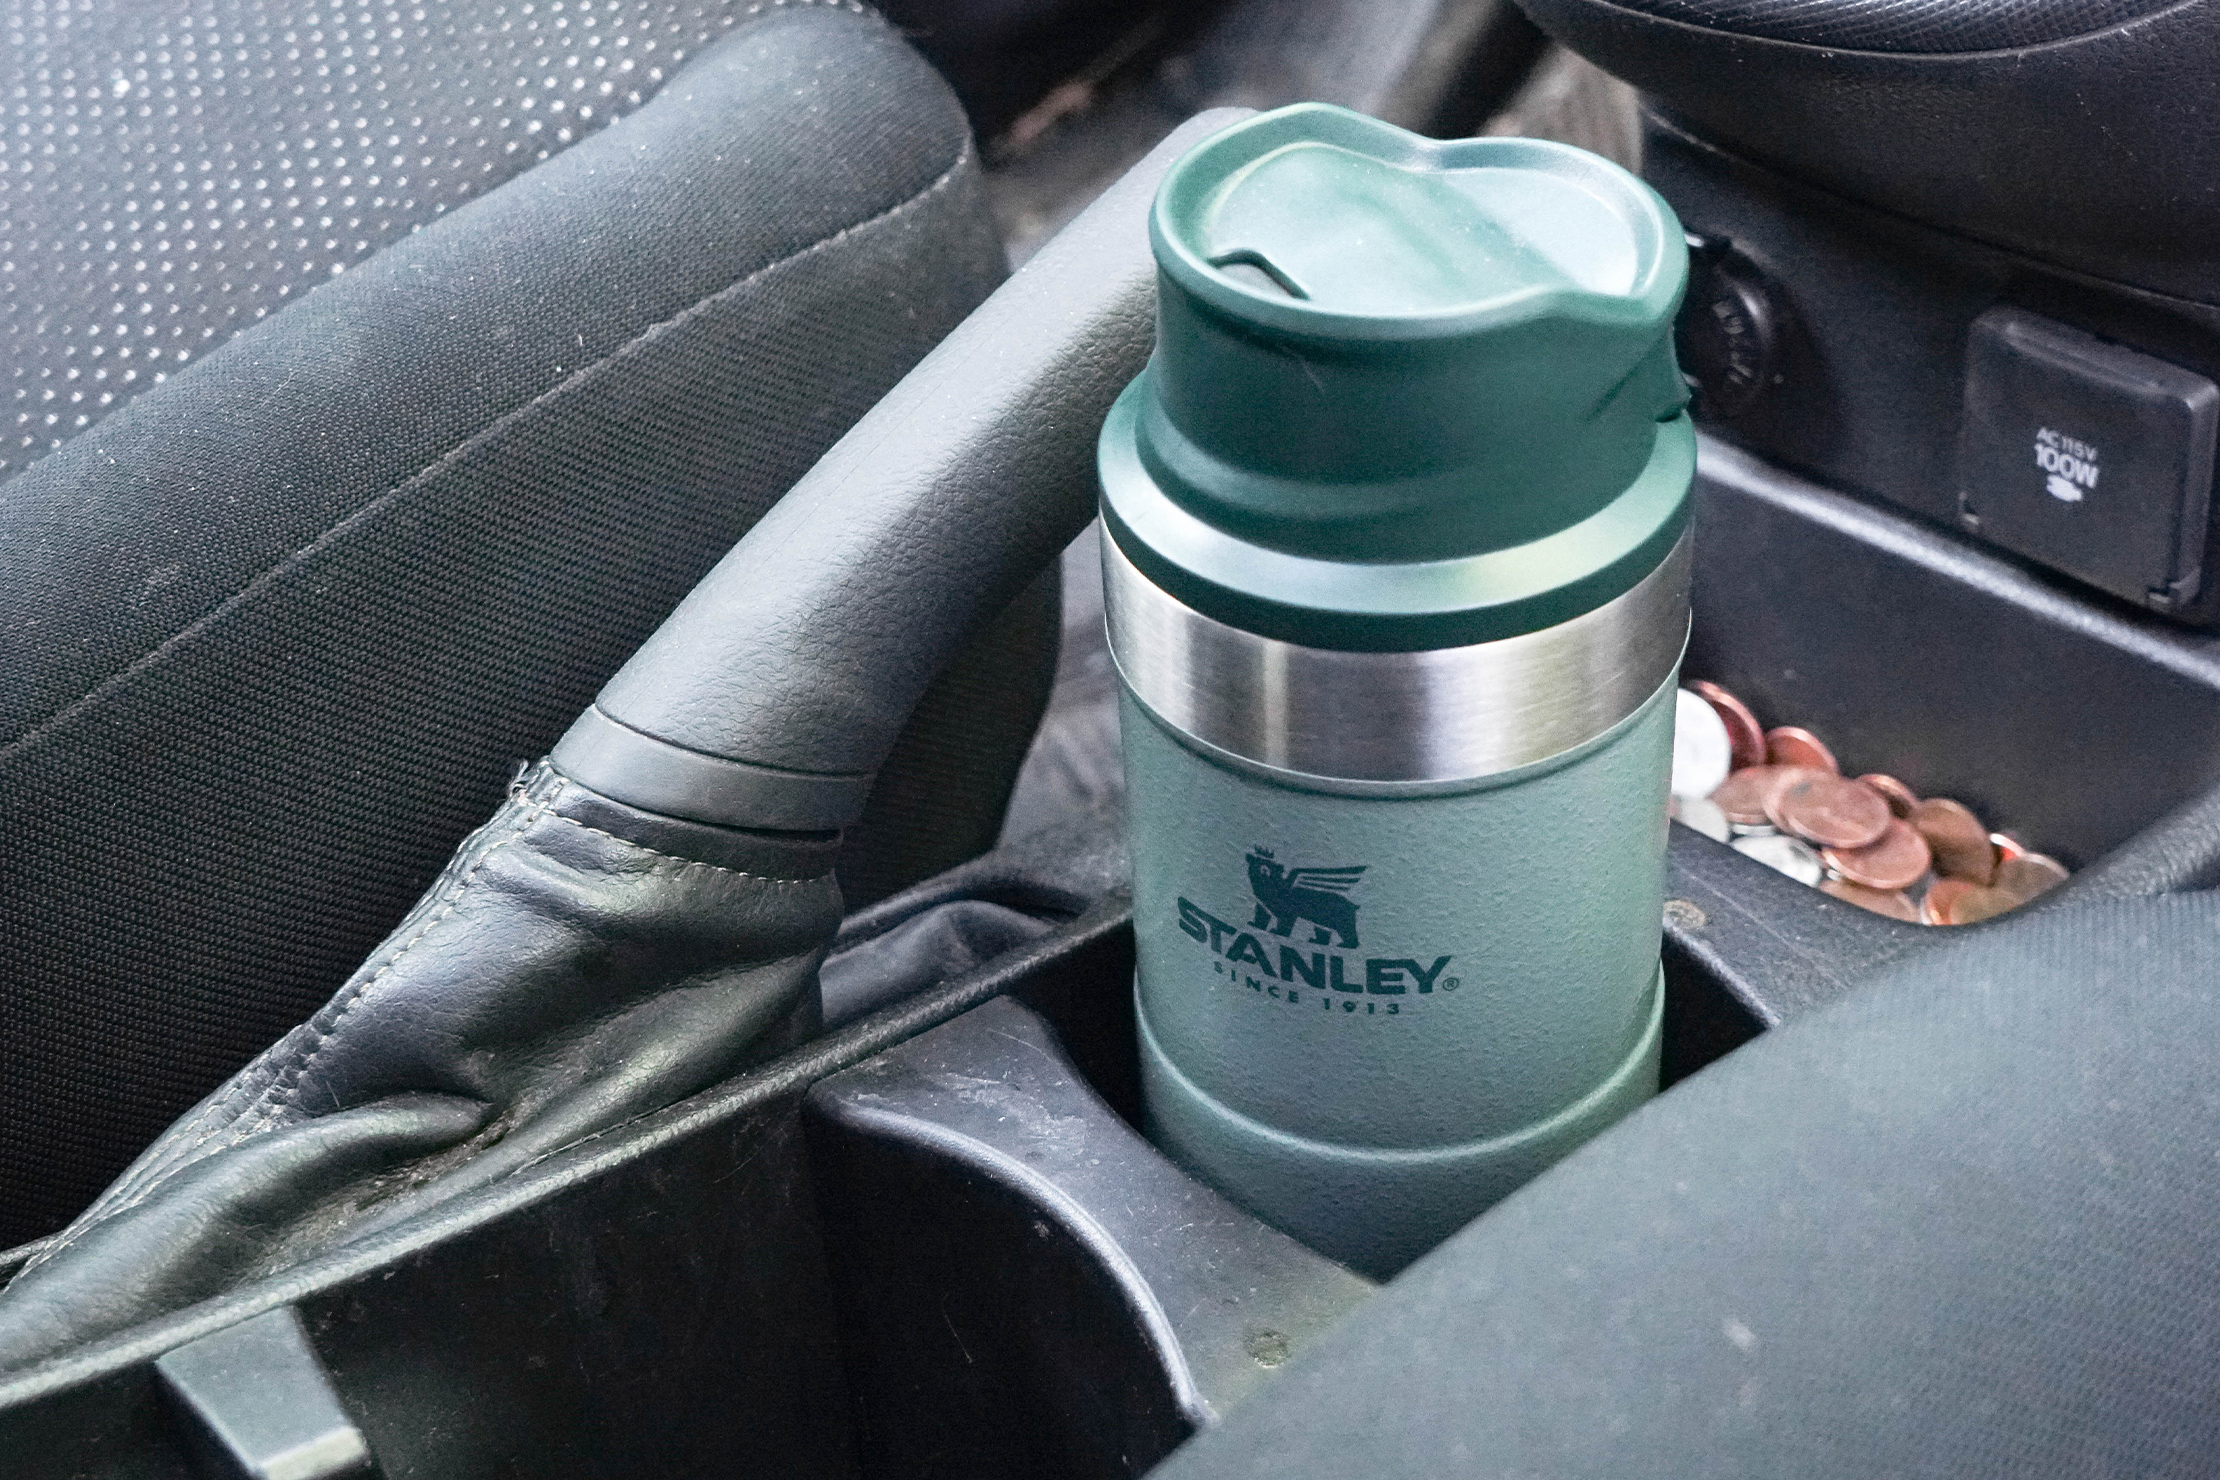 Stanley Classic Trigger-Action Travel Mug 12oz in Cup Holder